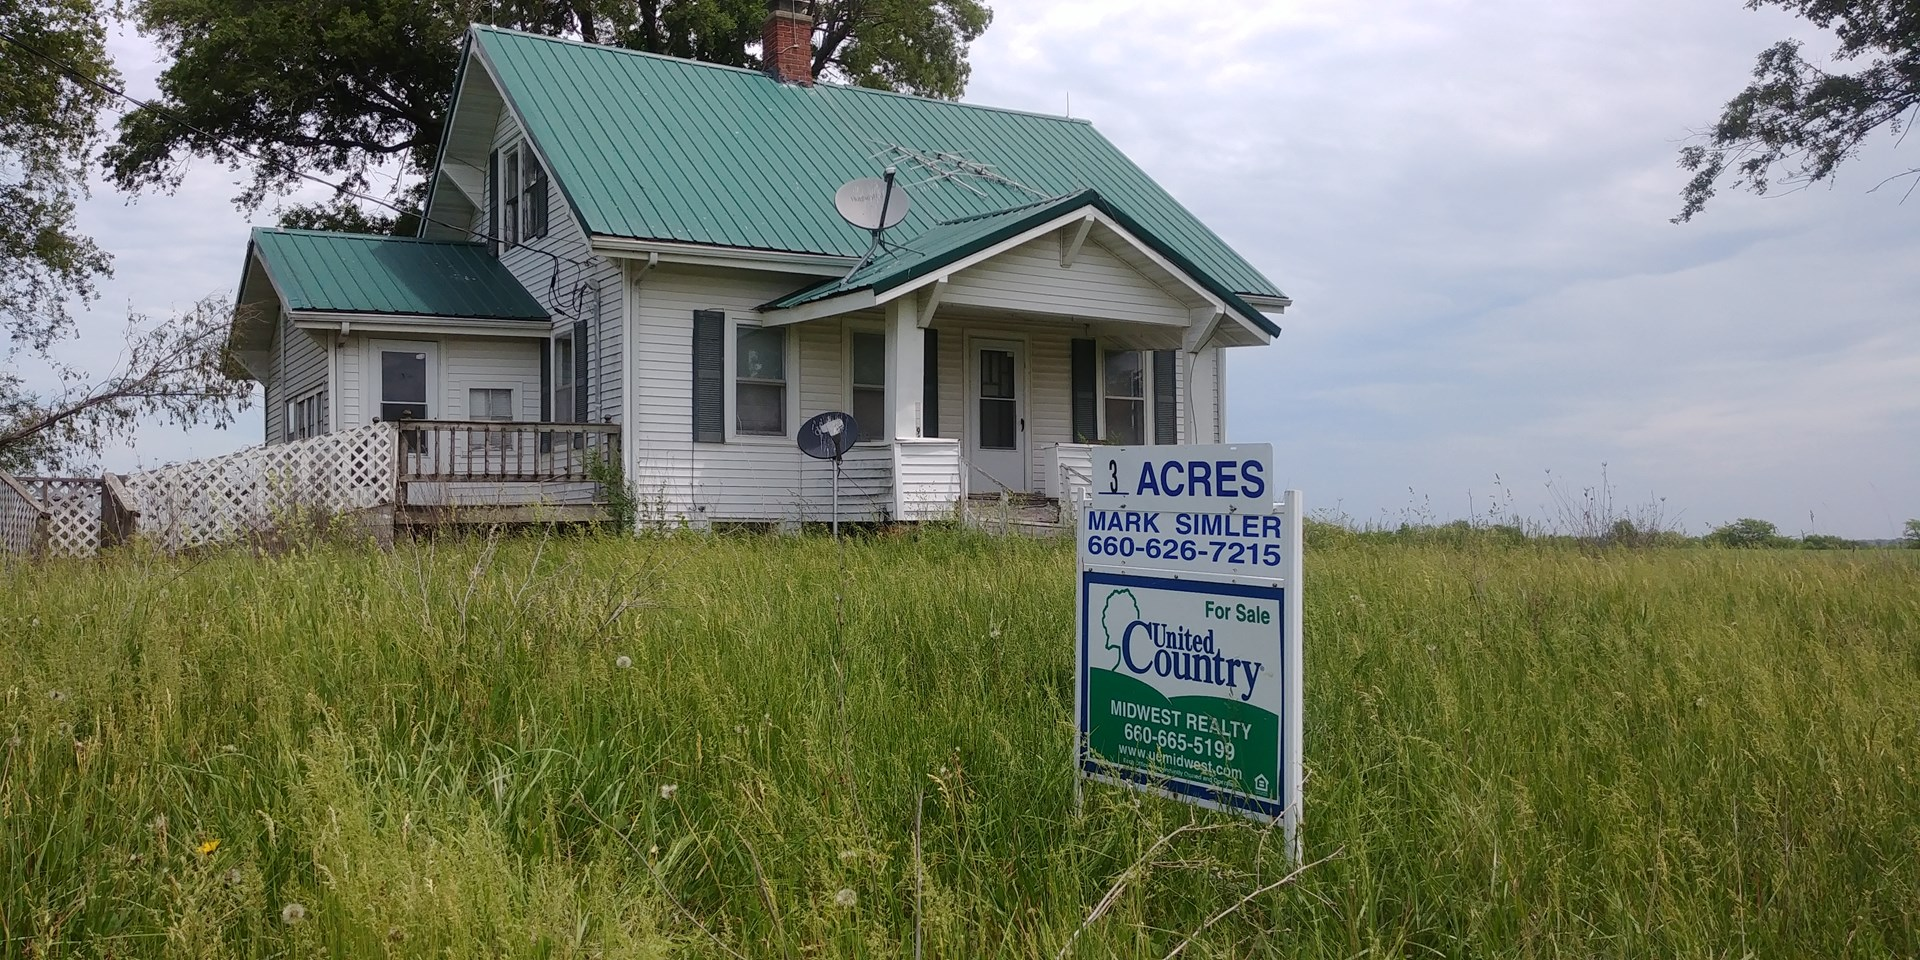 COUNTRY HOME ON 3 ACRES, GREEN CITY MISSOURI FOR SALE